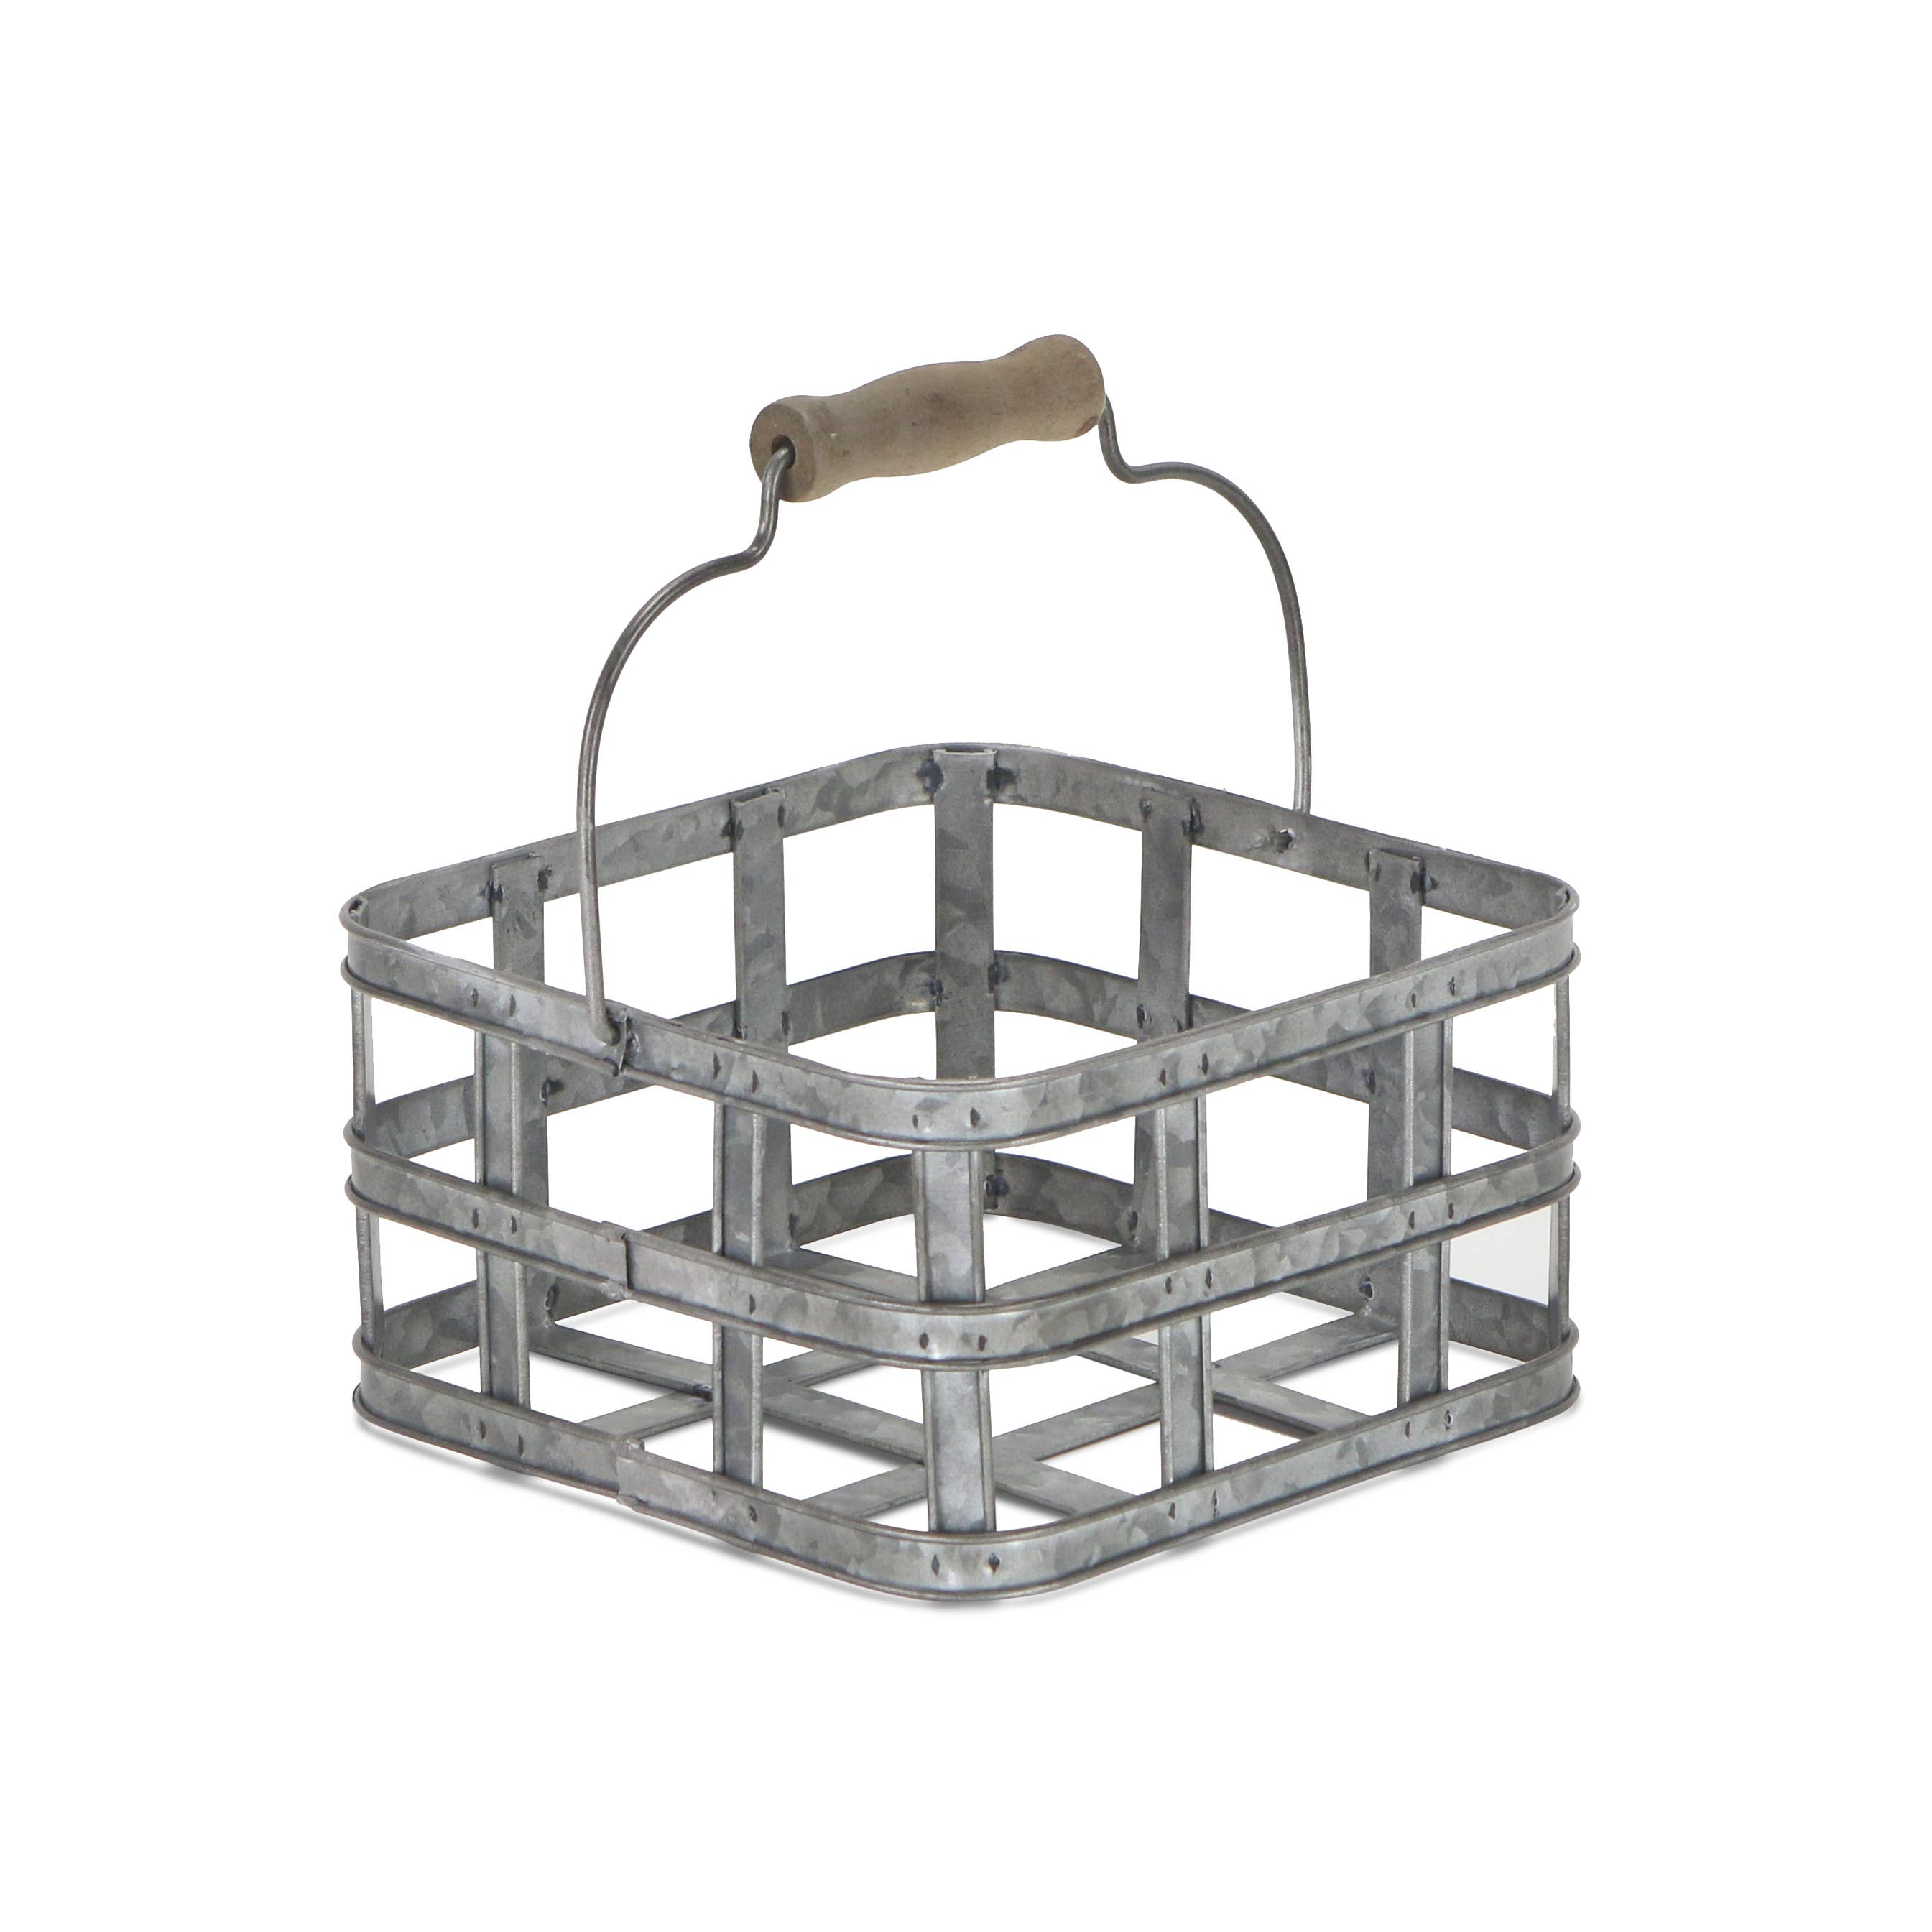 Cheungs - Square Metal Slatted Caddy